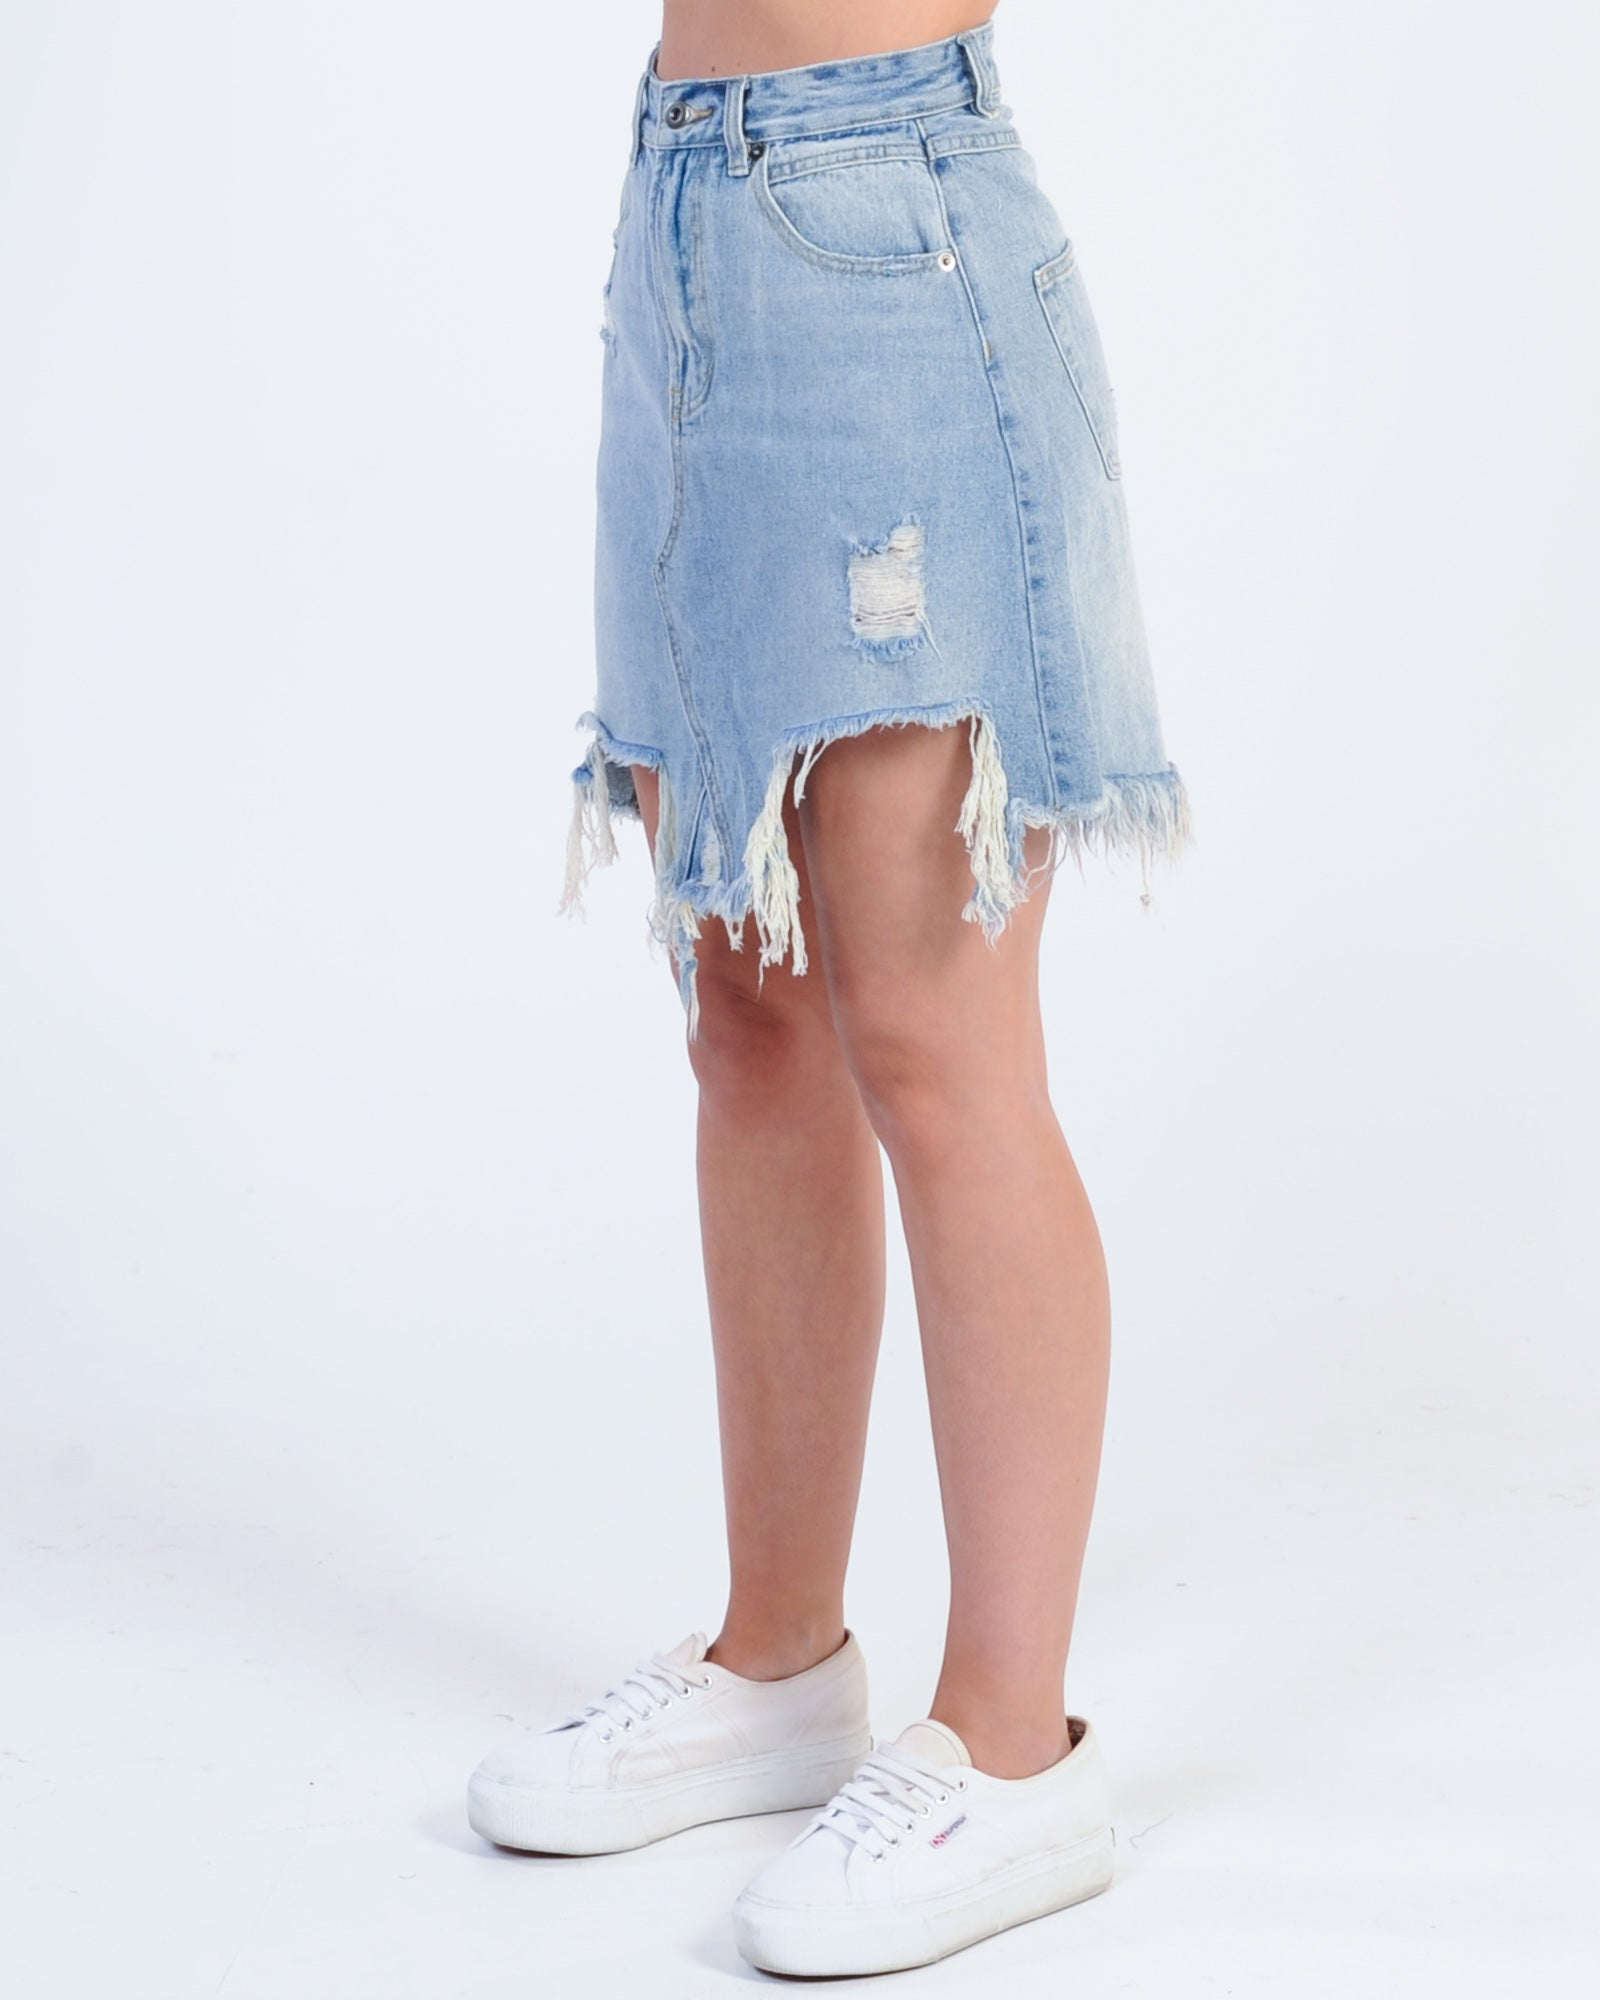 Madison The Label Jaymee Denim Skirt - Blue